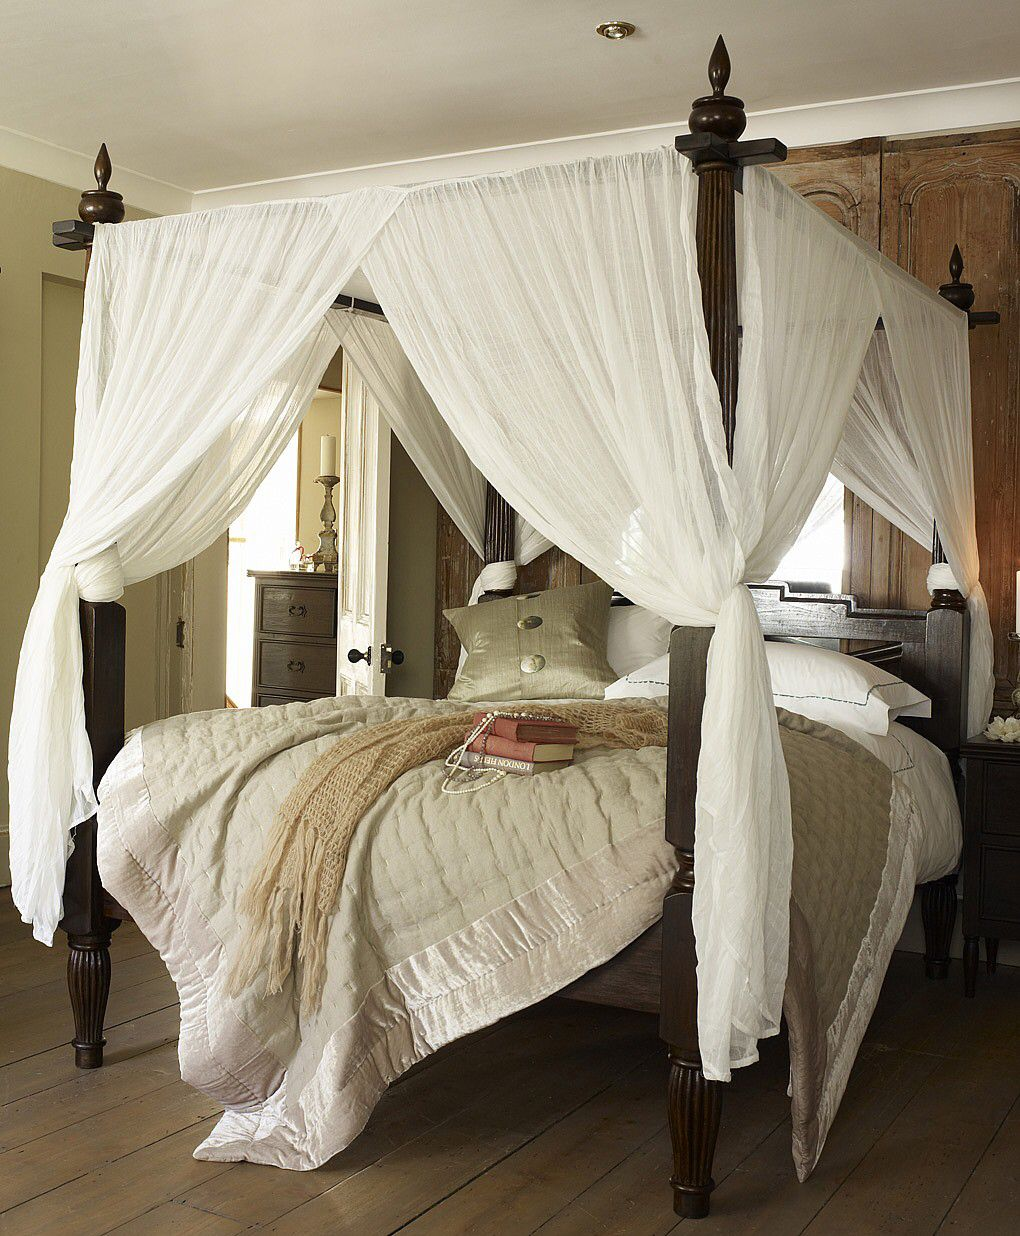 Black canopy bed curtains - Rustic Canopy Bed Bedroom Pinterest